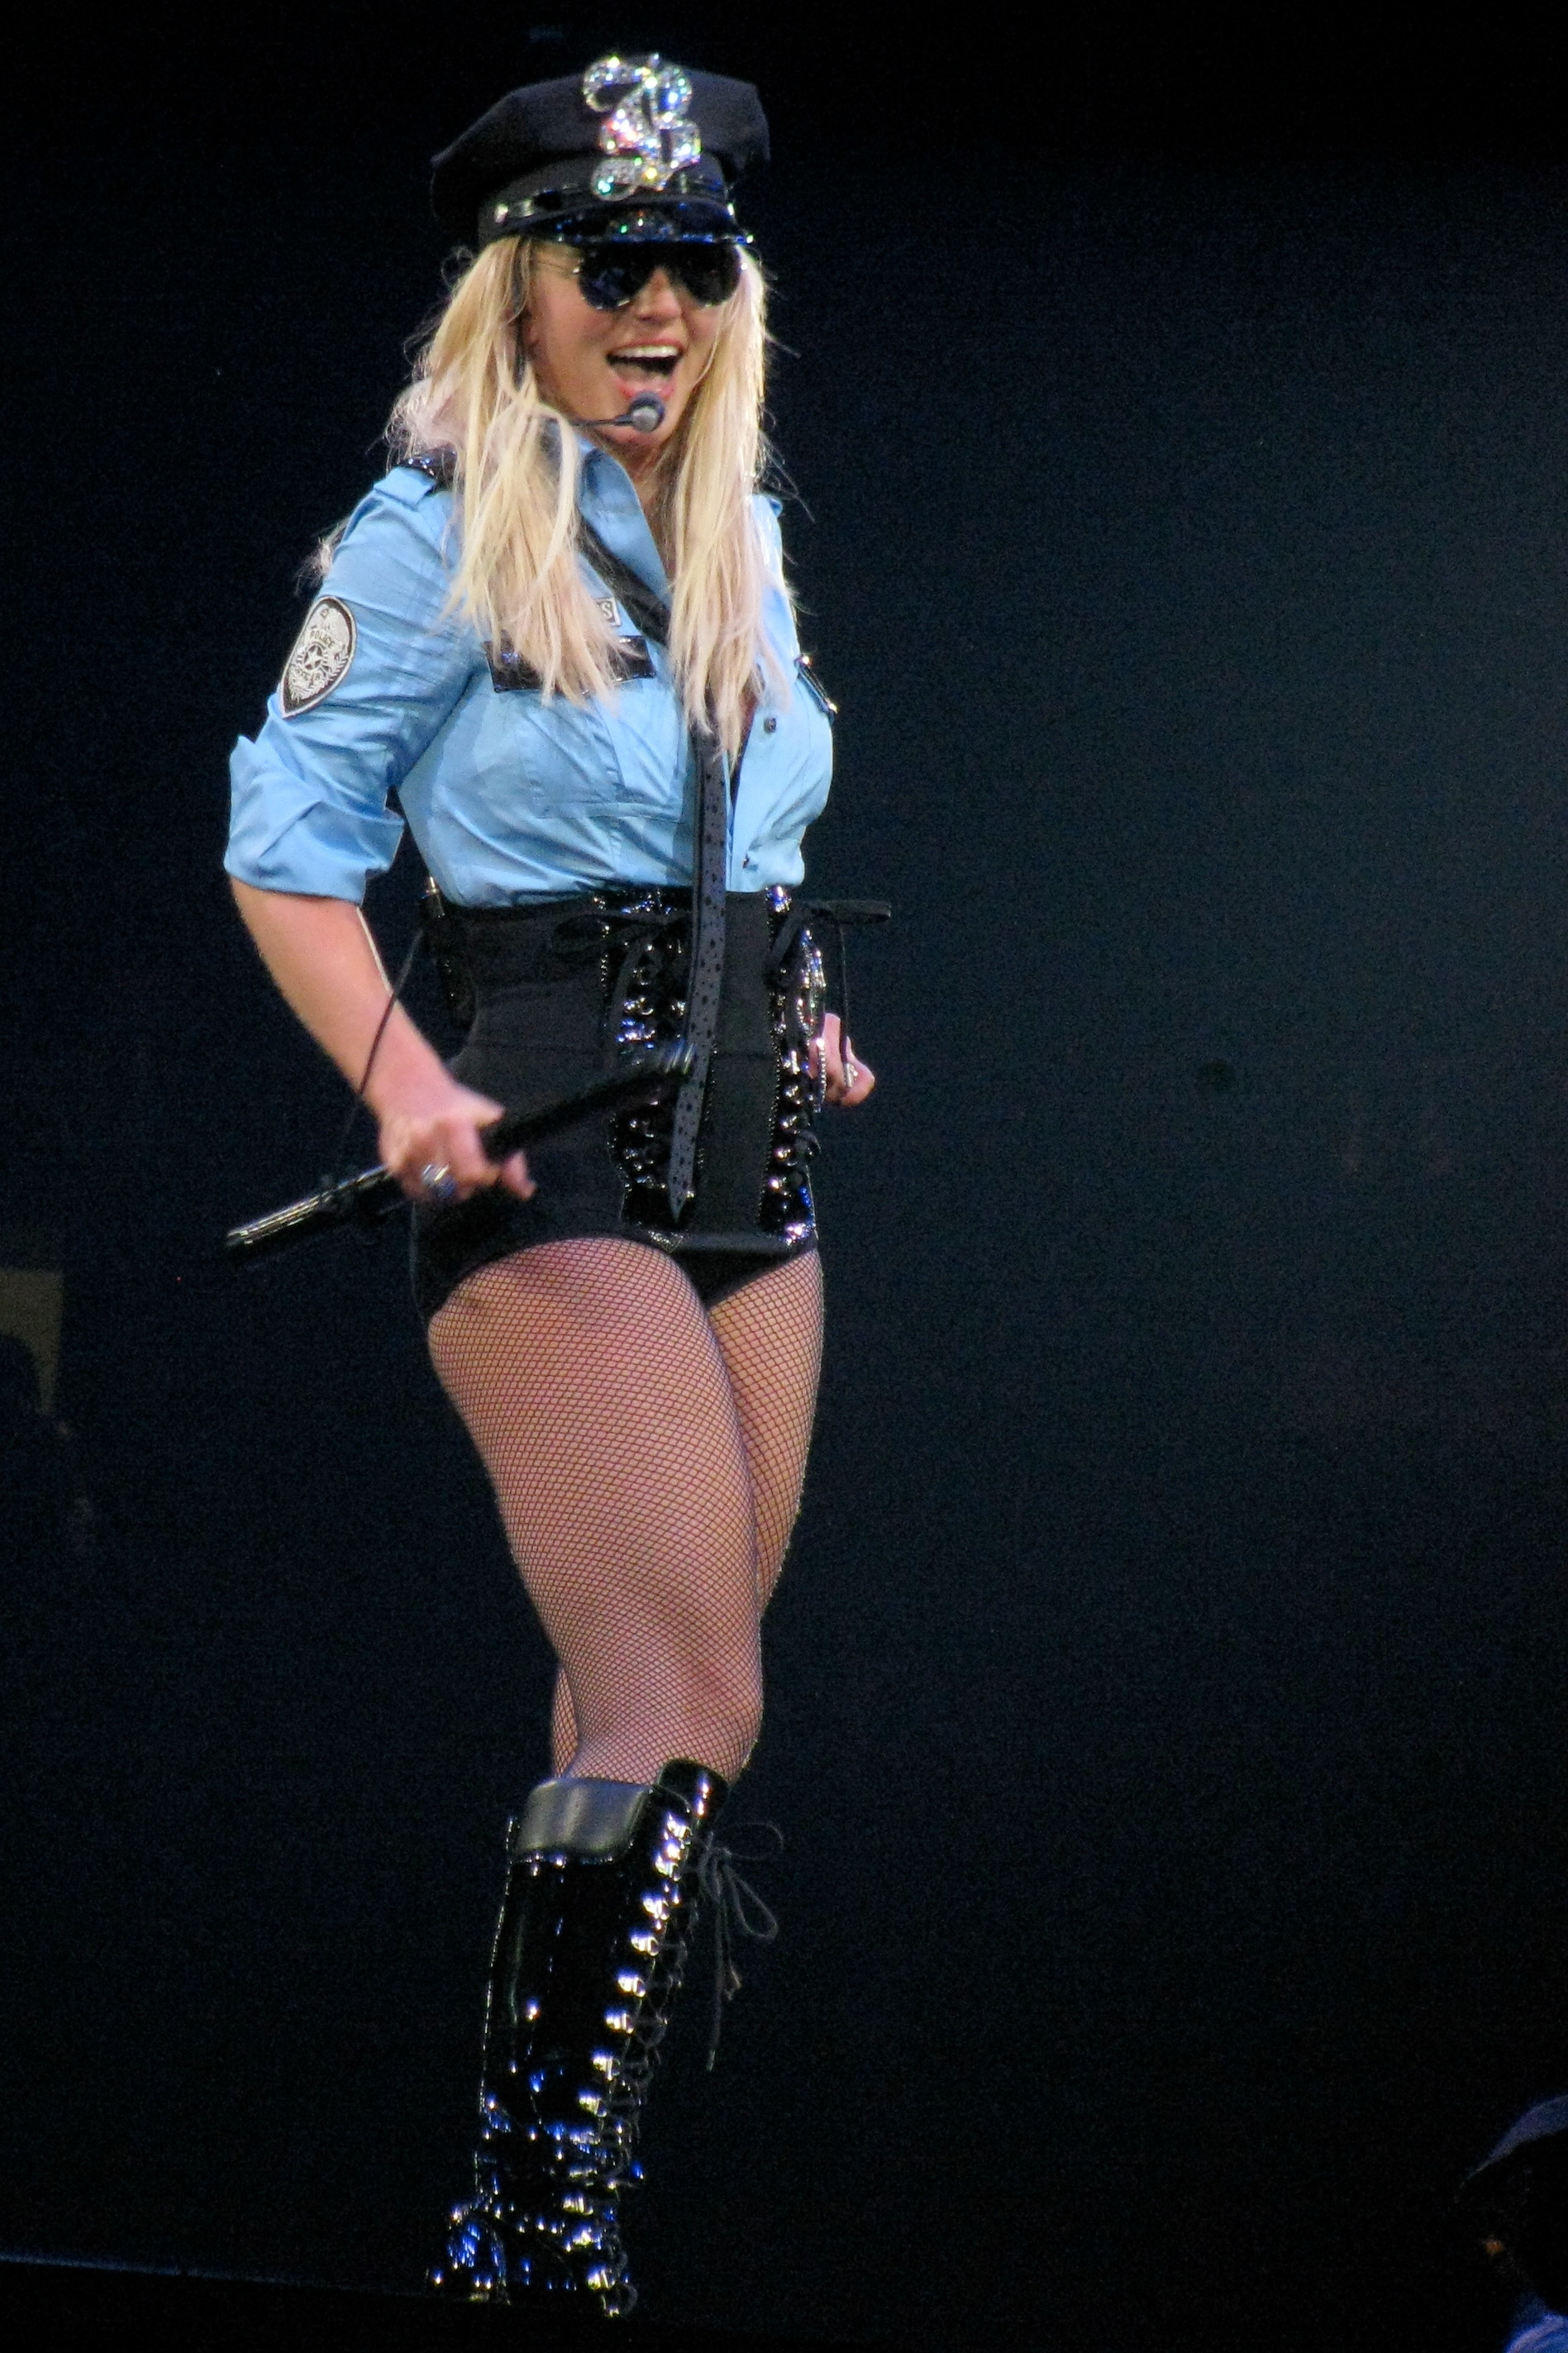 Britney Spears Concert Womanizer Flickr Photo Sharing